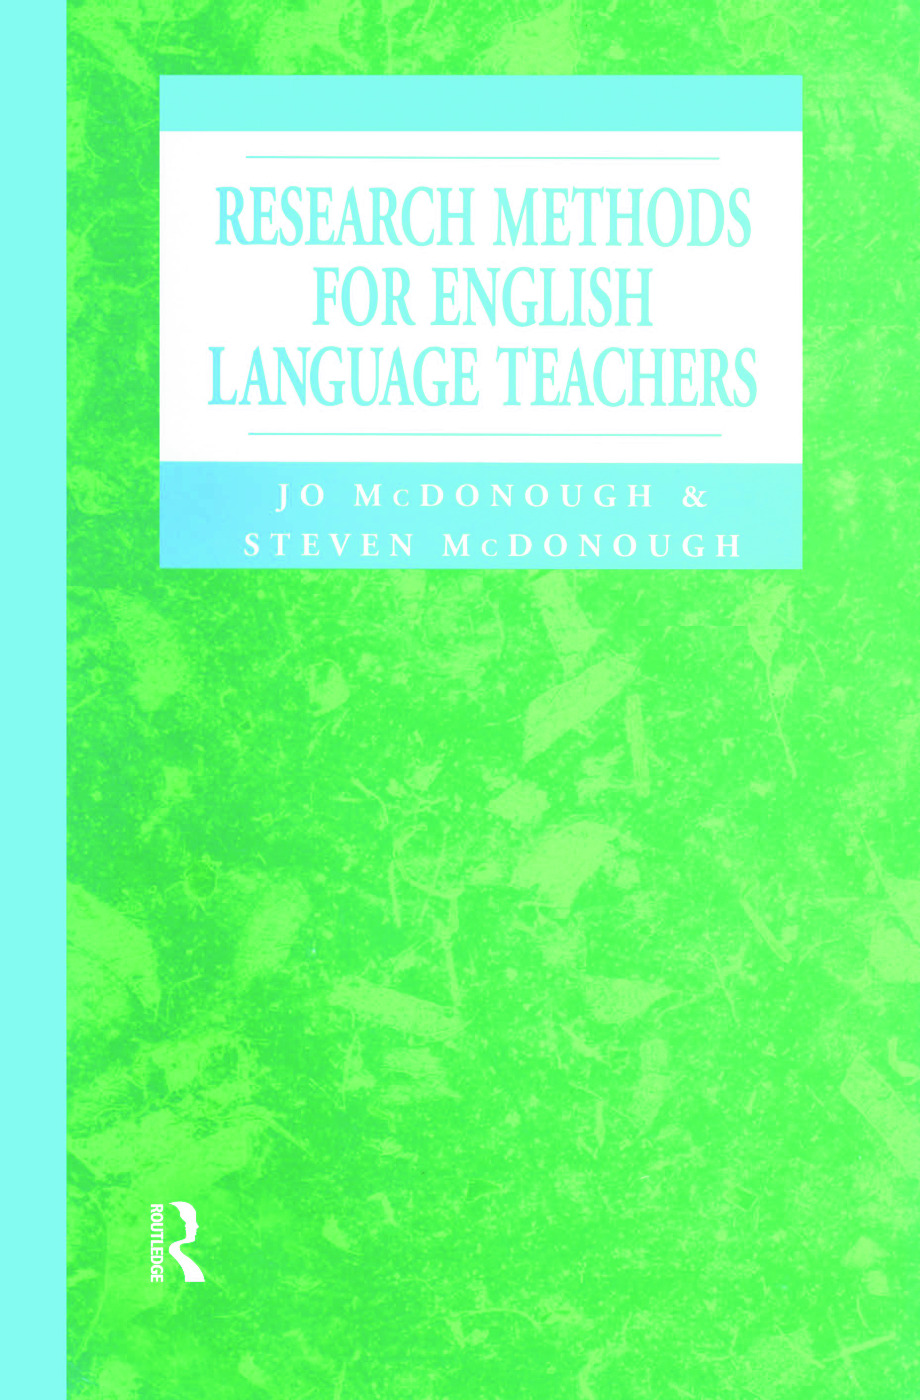 Research Methods for English Language Teachers (Paperback) book cover